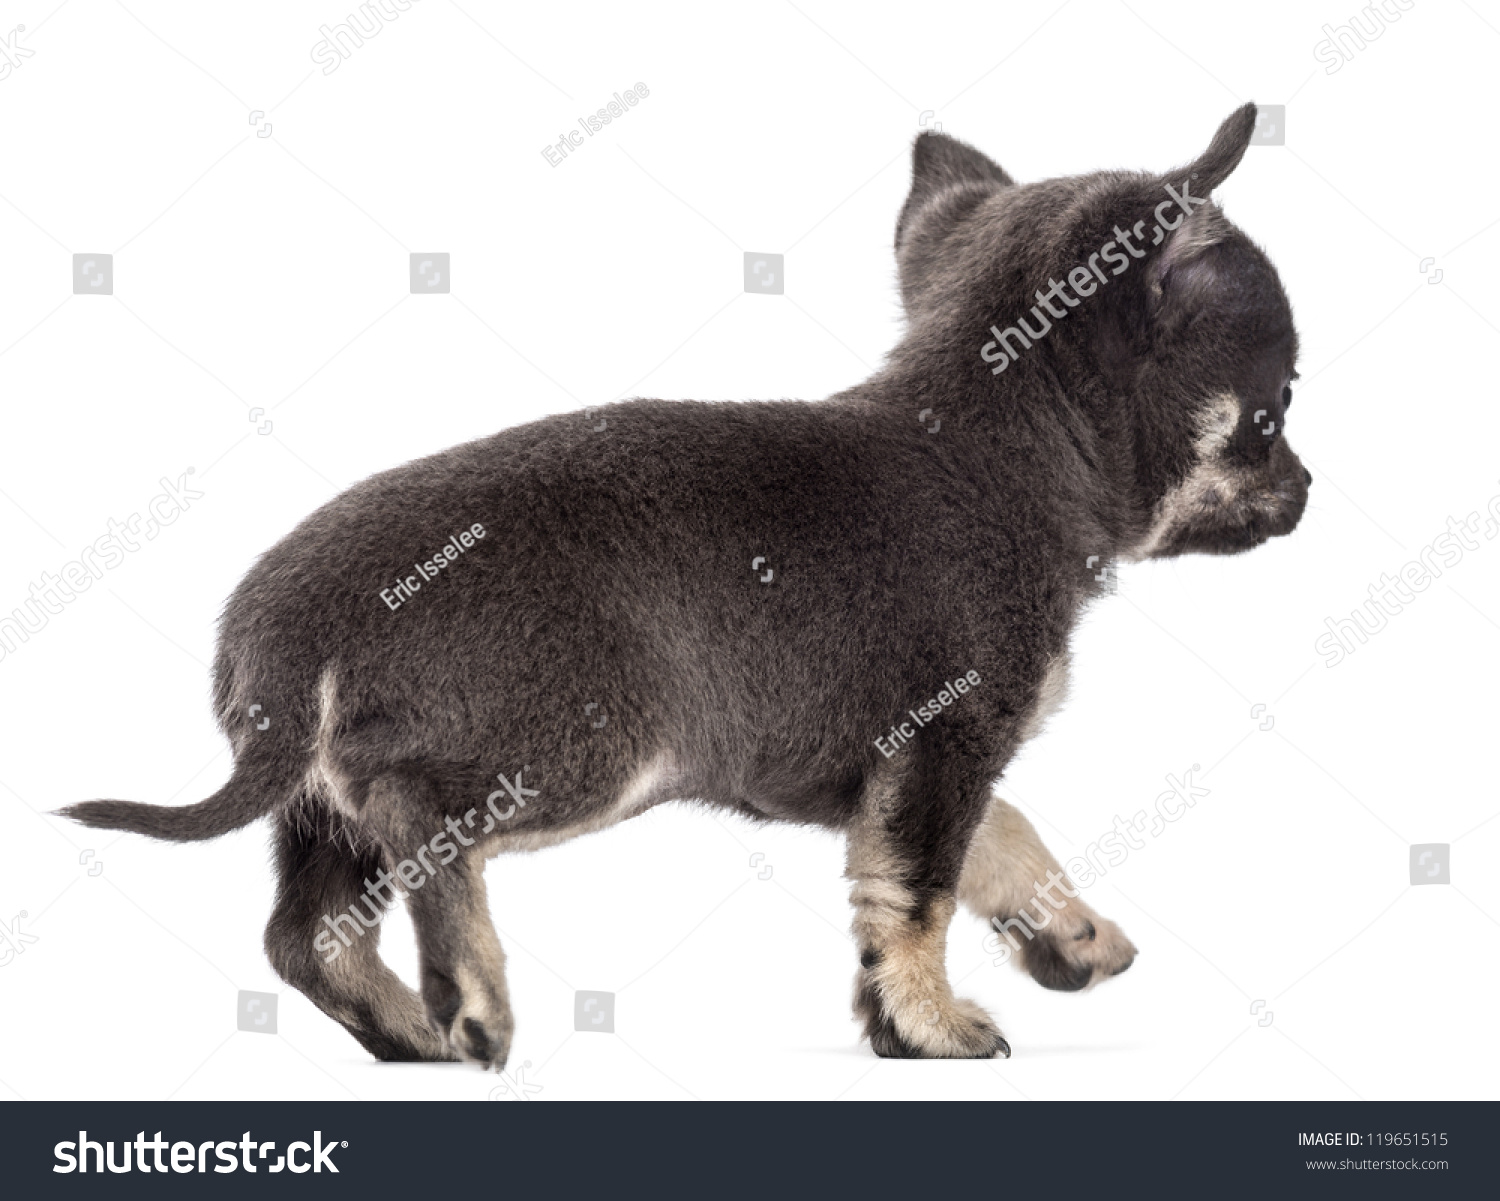 Chihuahua Puppy 7 Weeks Old Walking Away Against White Background Wolf Cihuahua Id 119651515